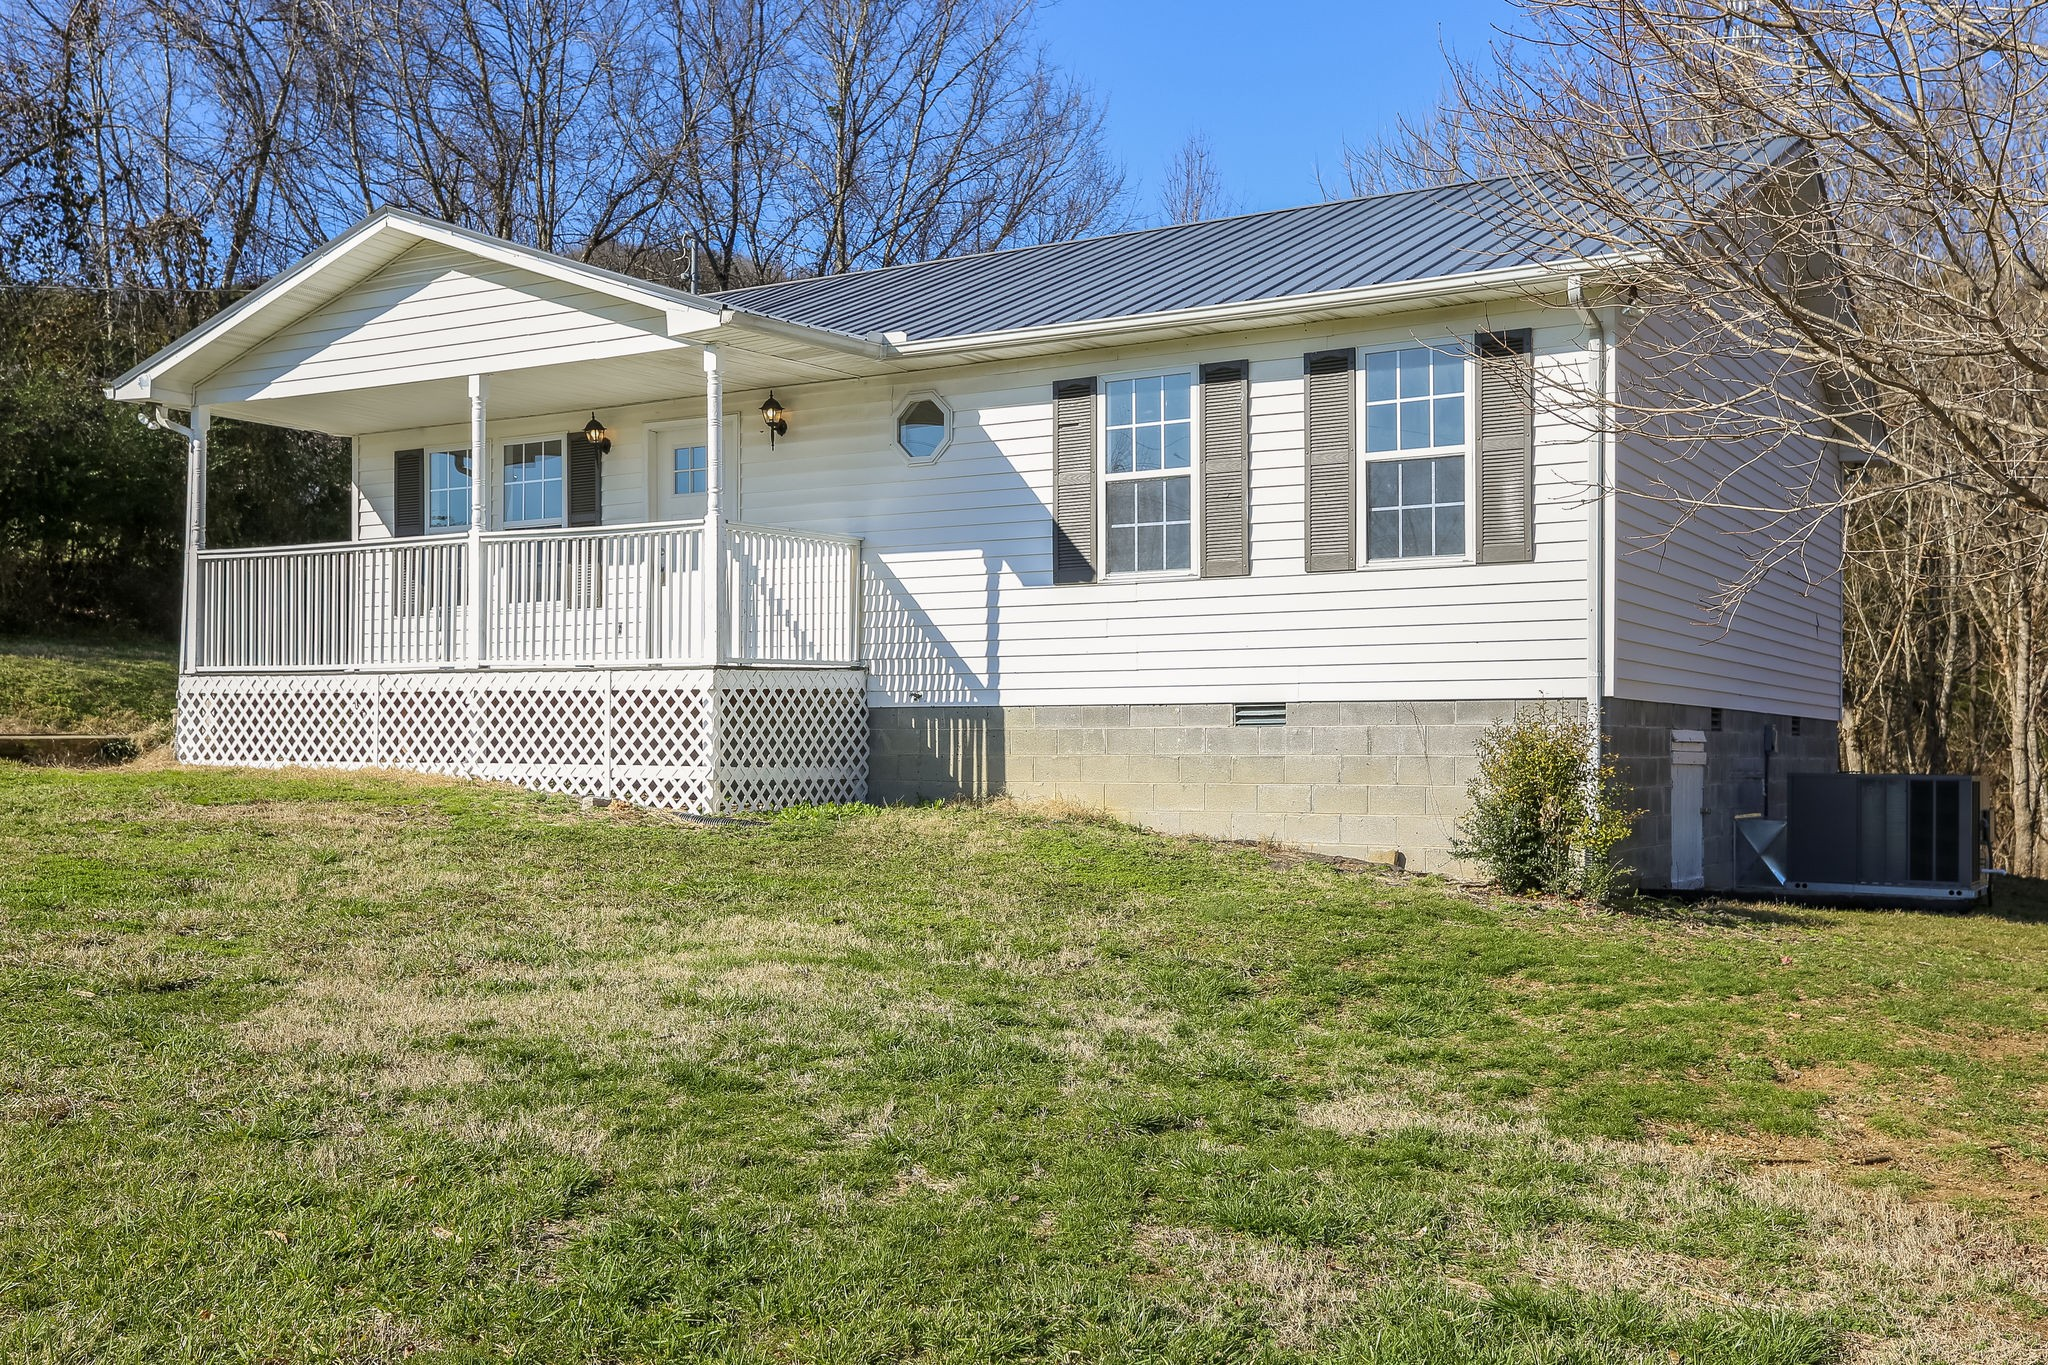 158 Short St, Liberty, TN 37095 - Liberty, TN real estate listing